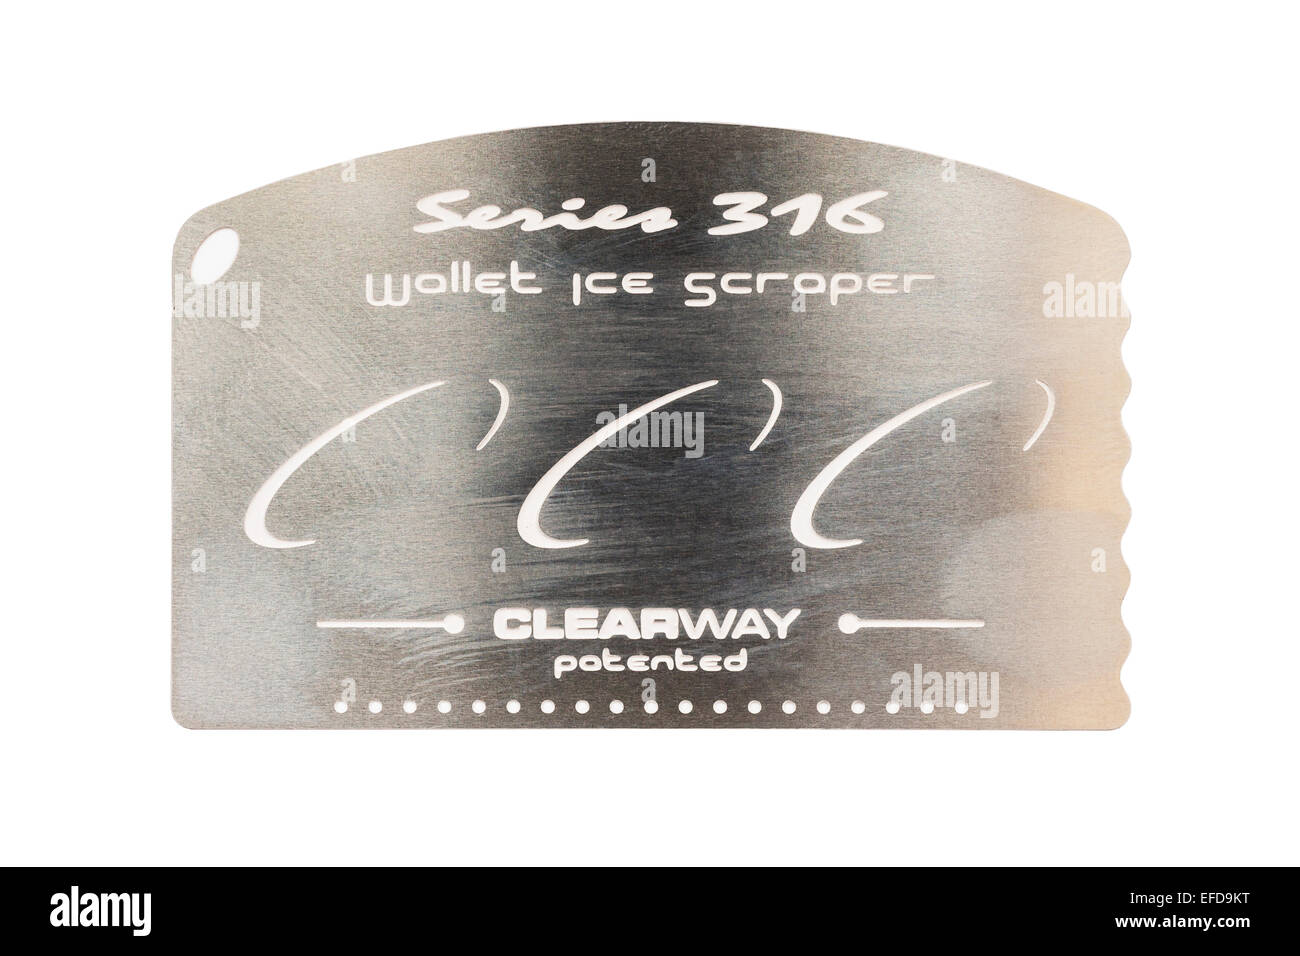 A Wallet ice scraper for scraping ice from your car windscreen on a white background - Stock Image